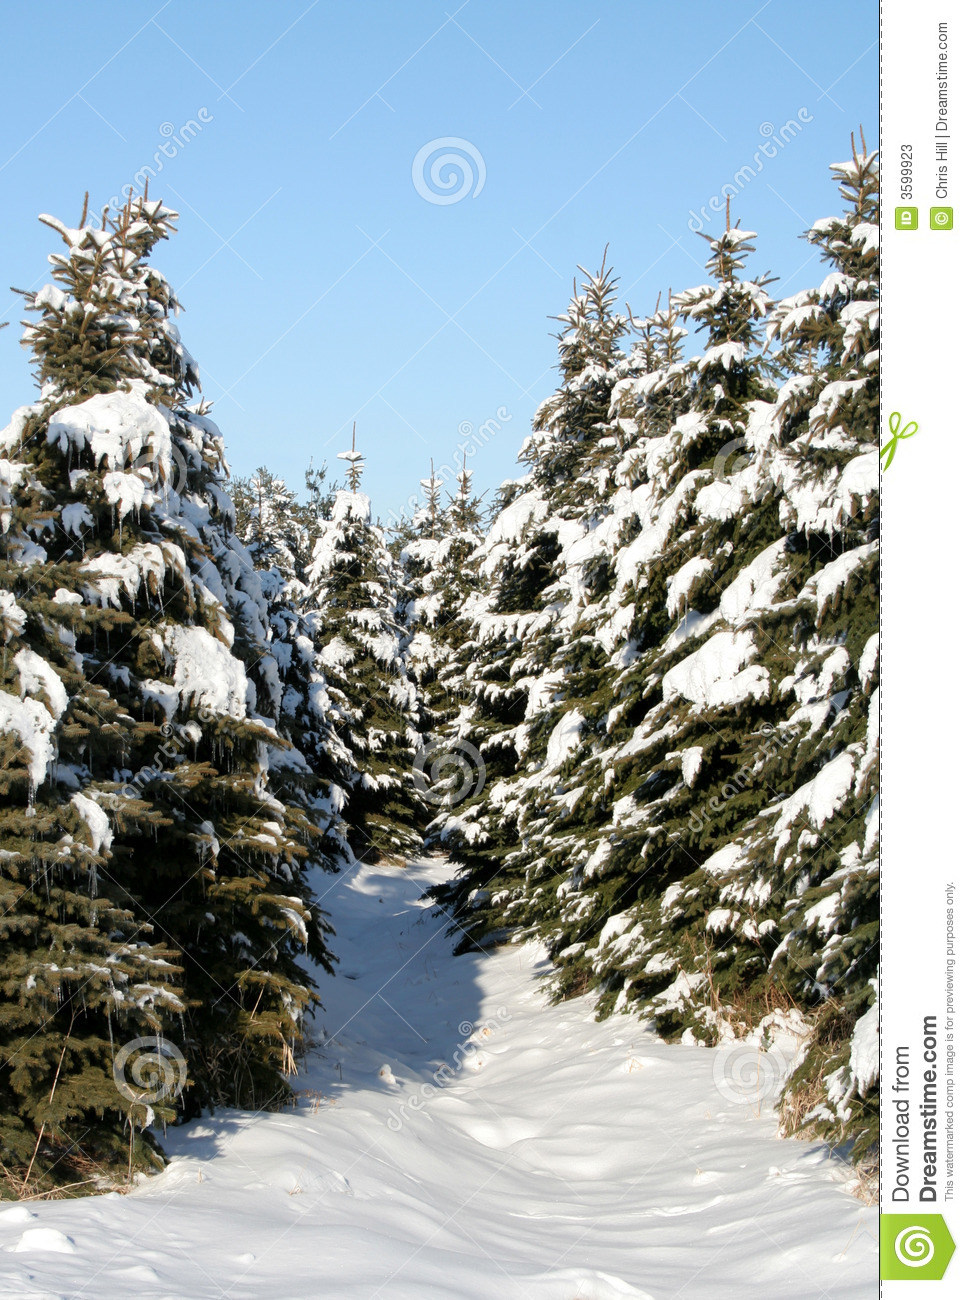 Evergreen trees covered in snow | Stock Photo | Colourbox